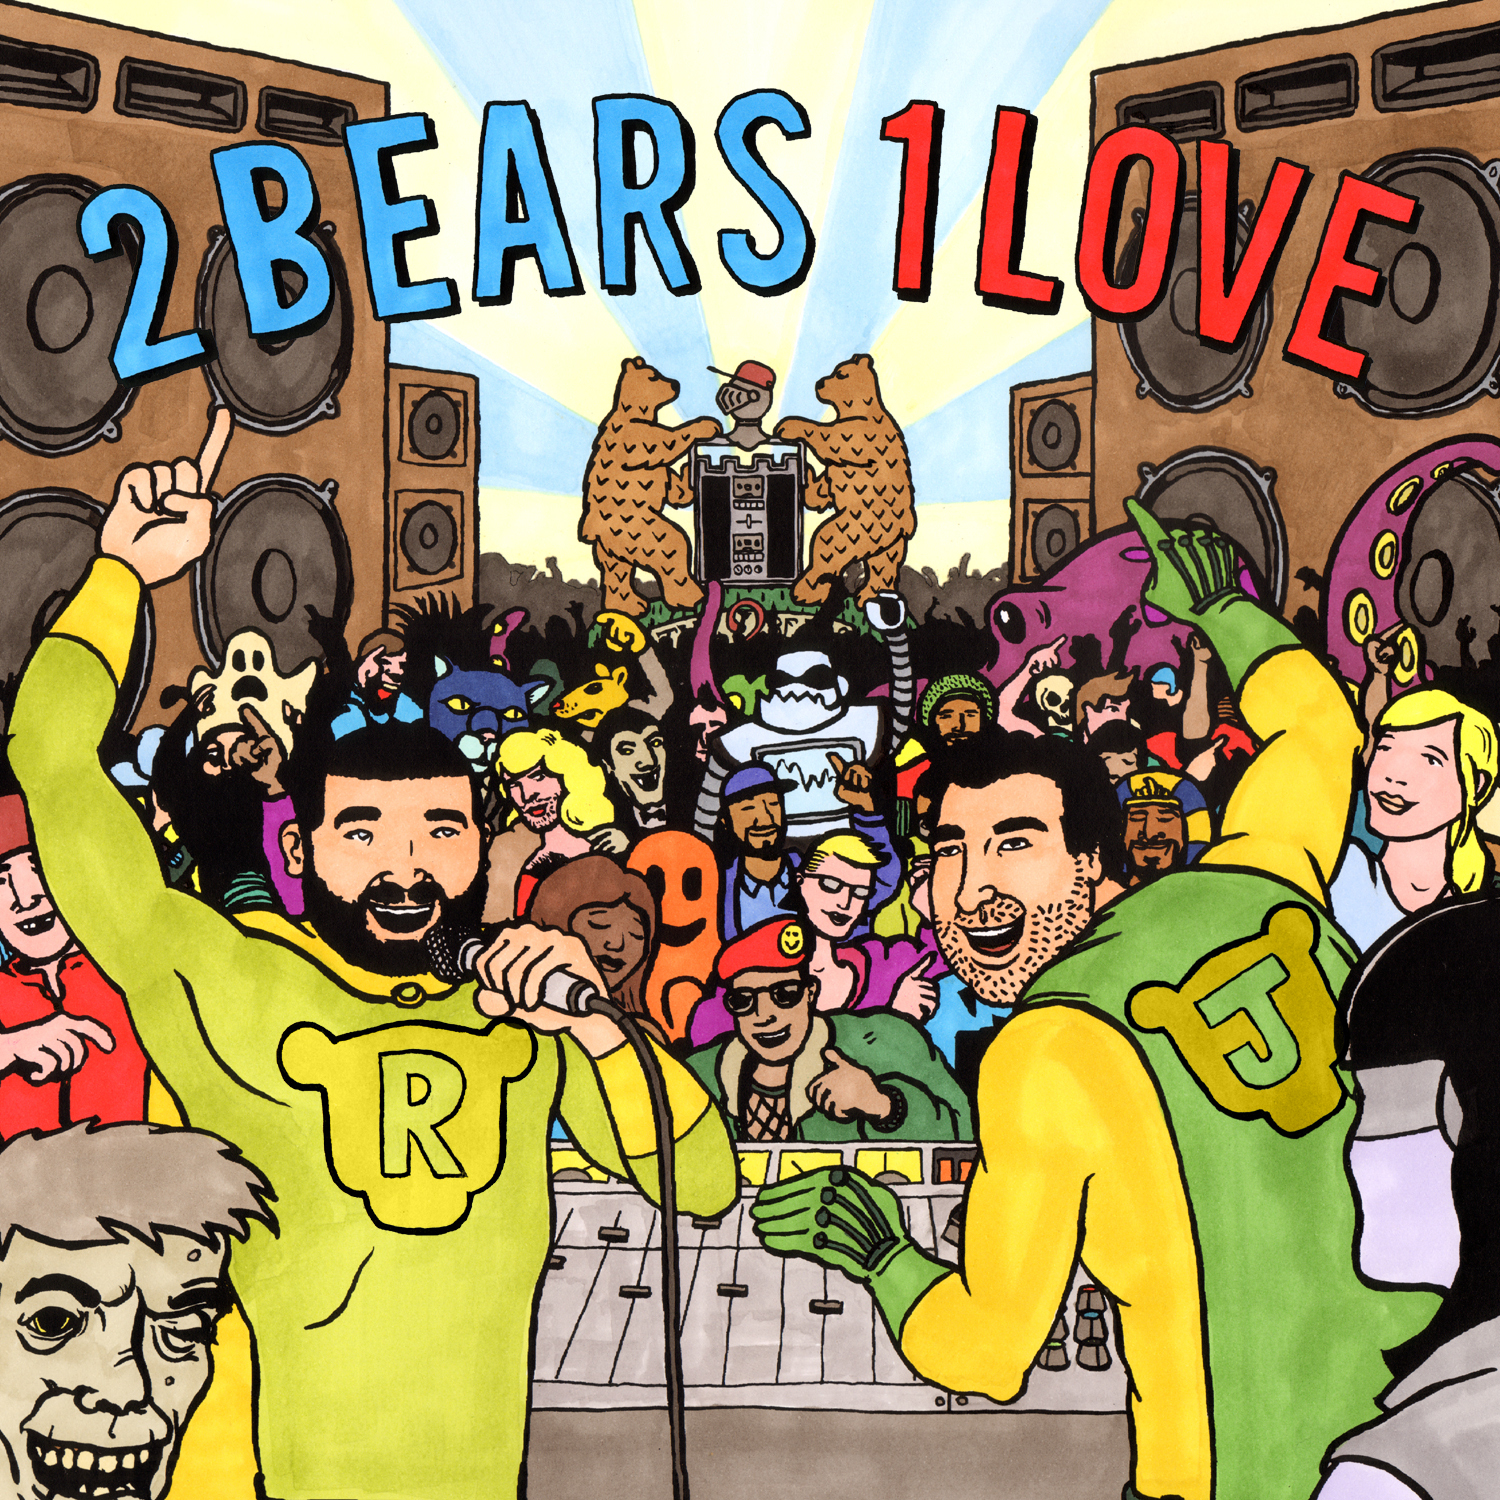 The 2 Bears' new mix, 2 Bears 1 Love.